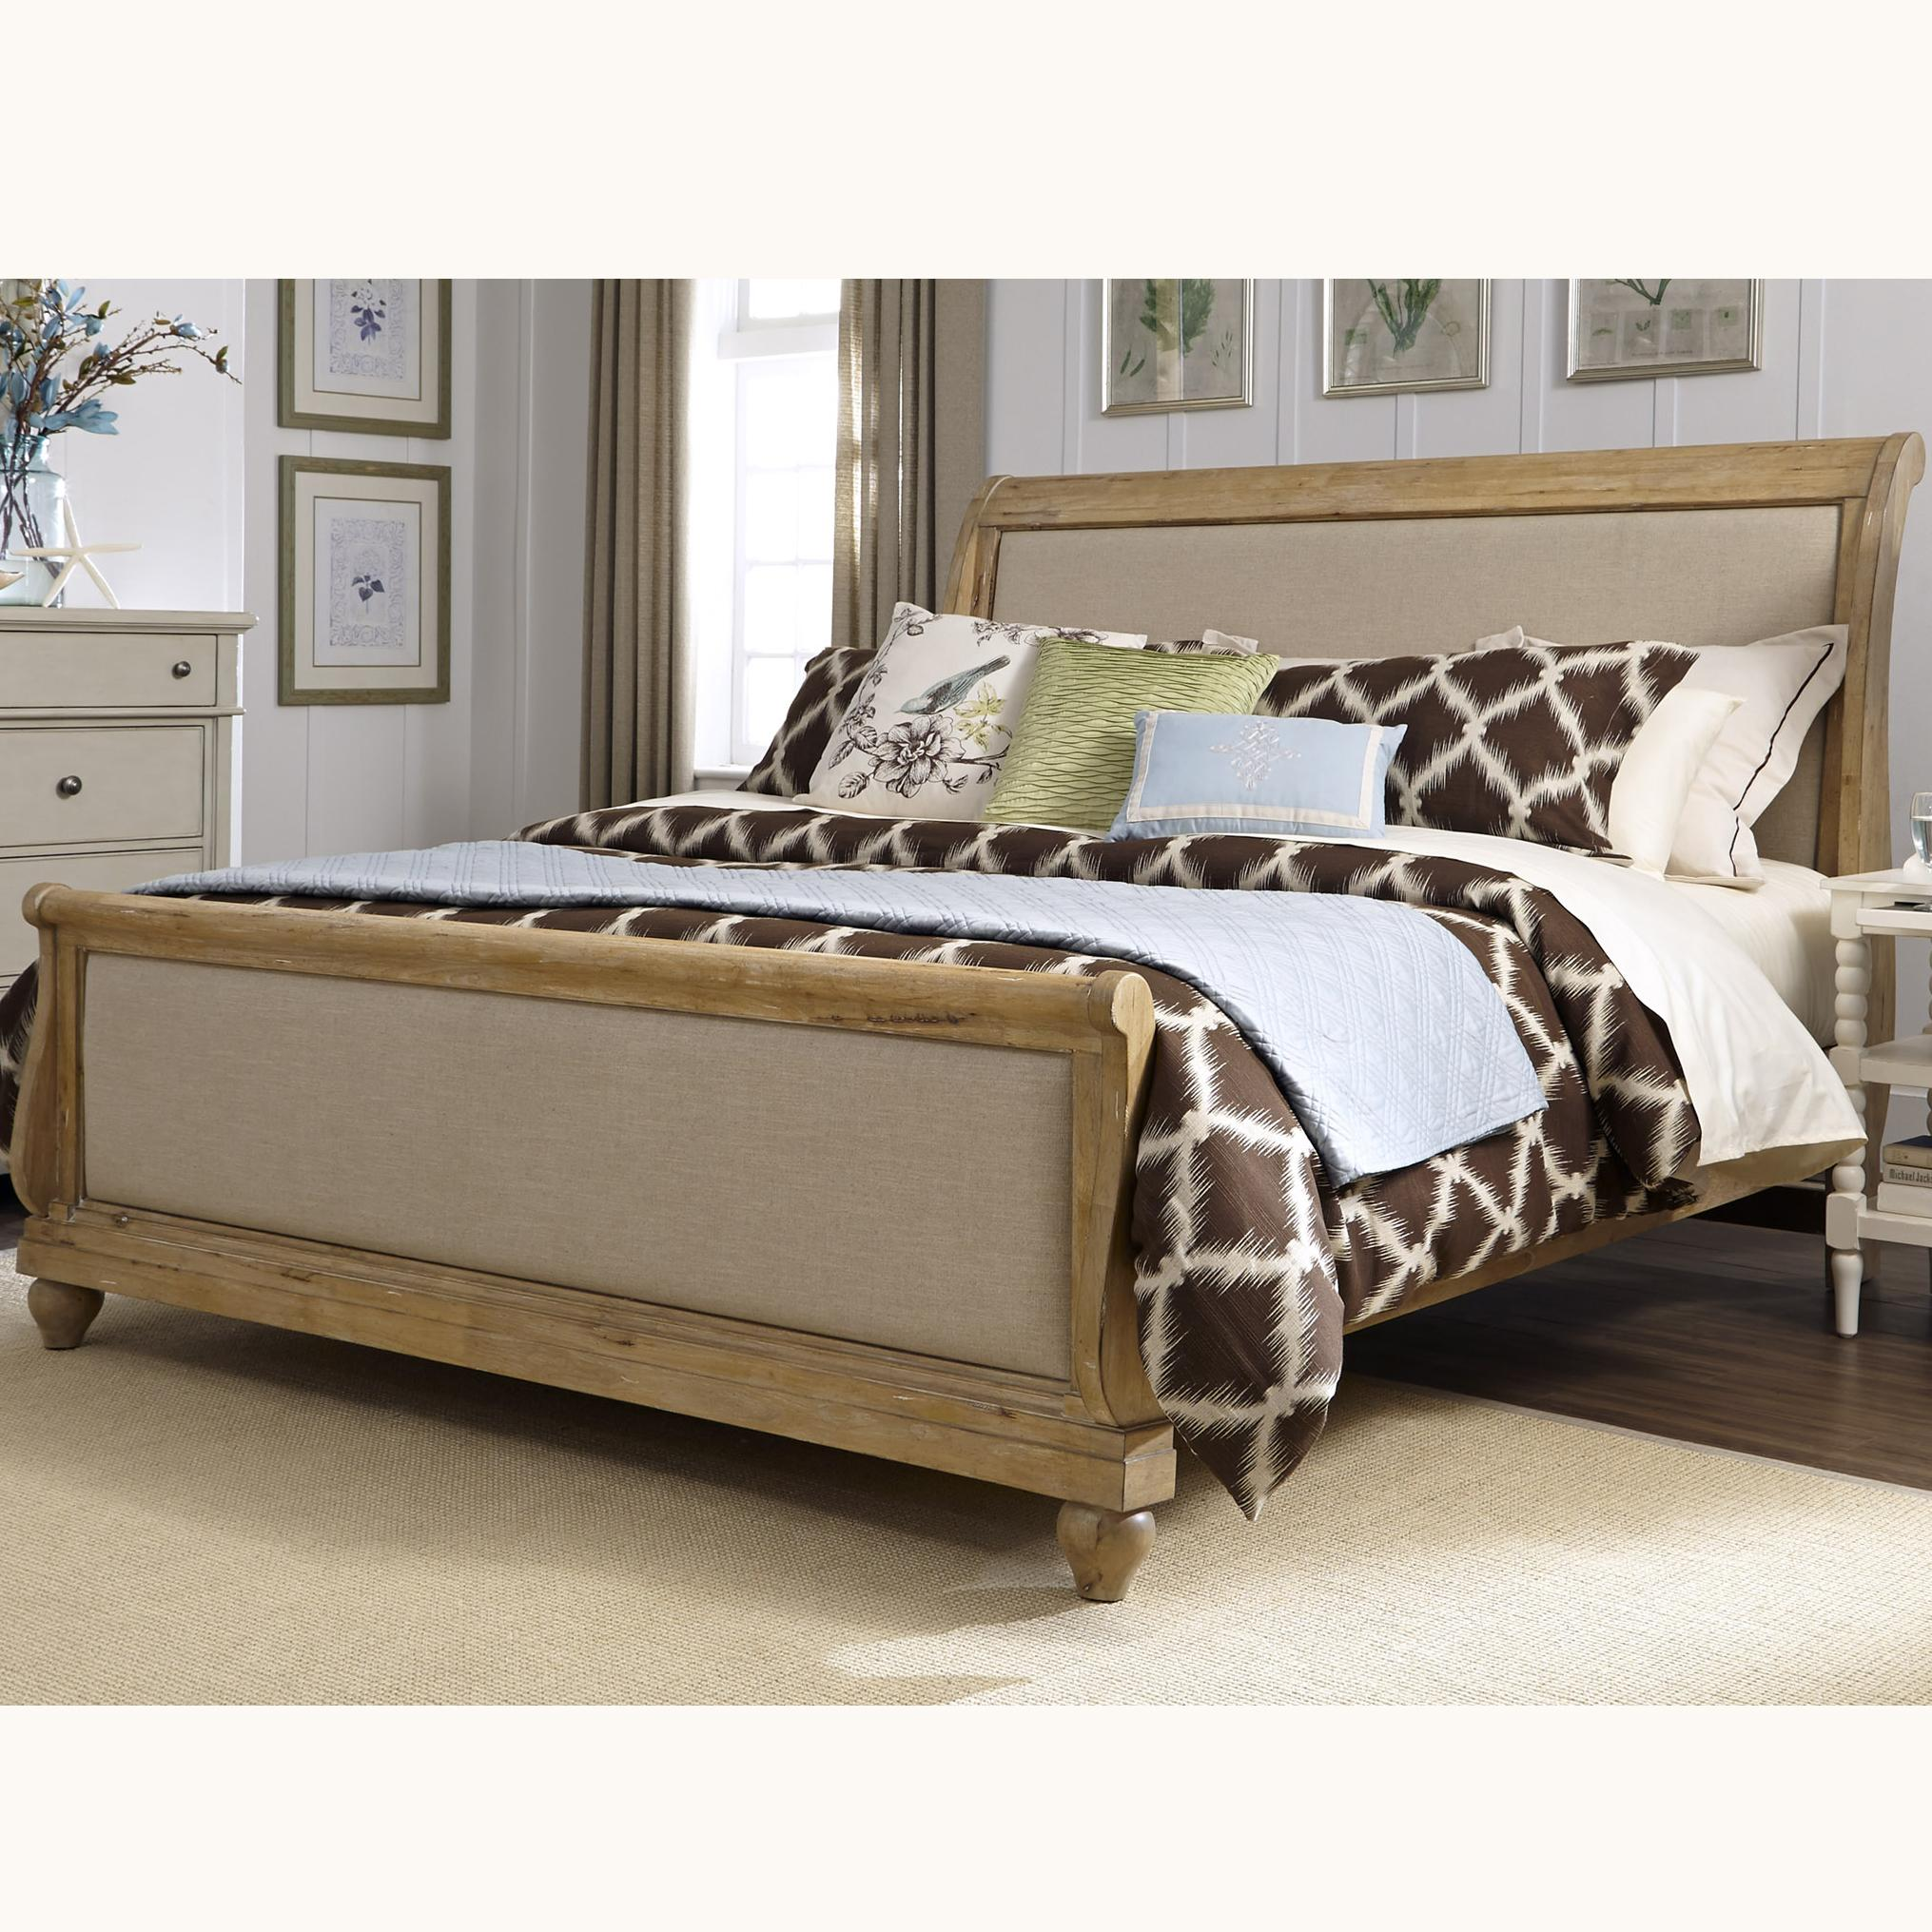 Liberty Furniture Harbor View King Sleigh Bed - Item Number: 531-BR-KSL